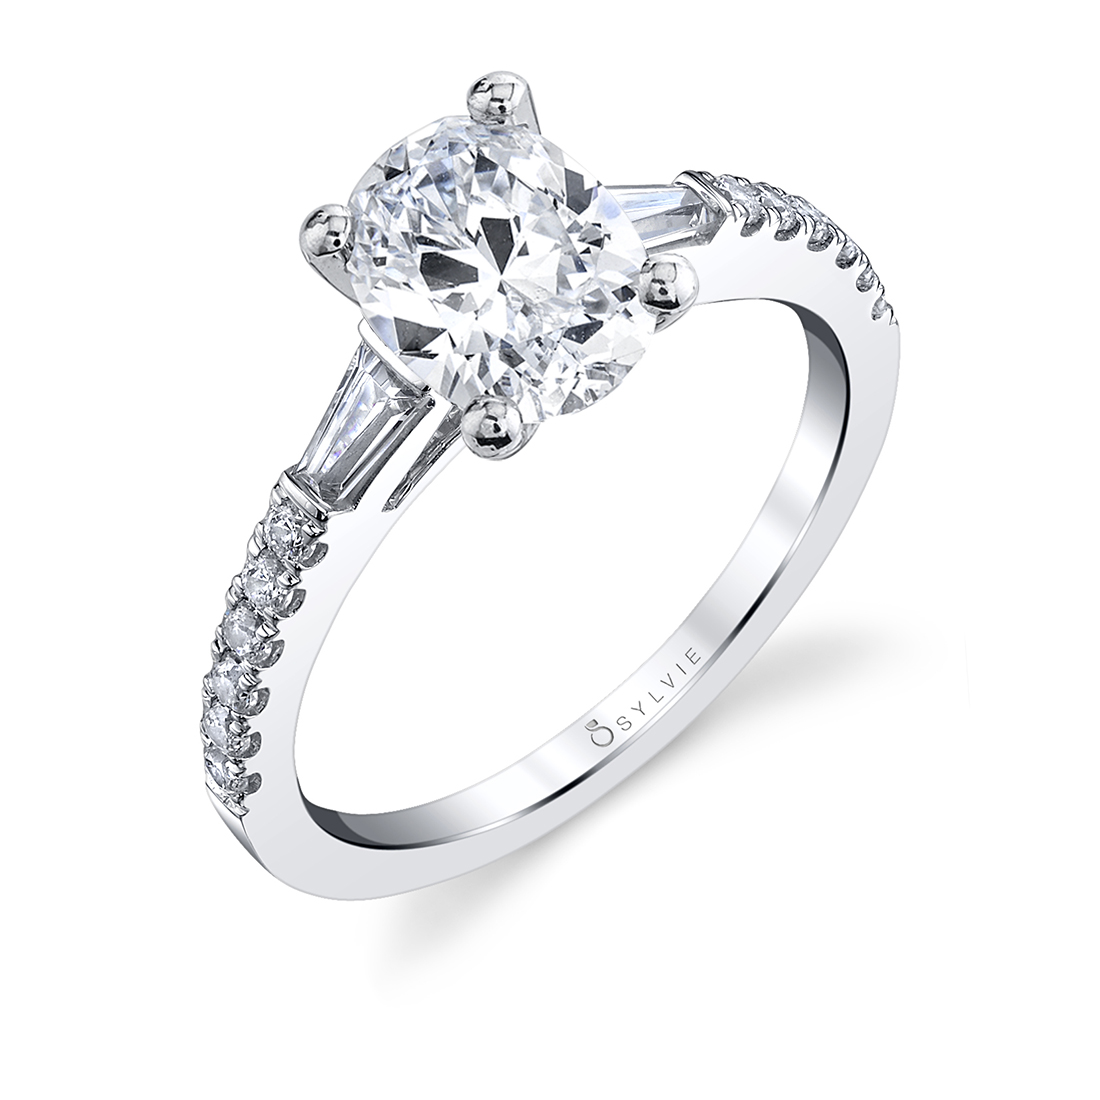 Oval engagement ring with baguettes in white gold